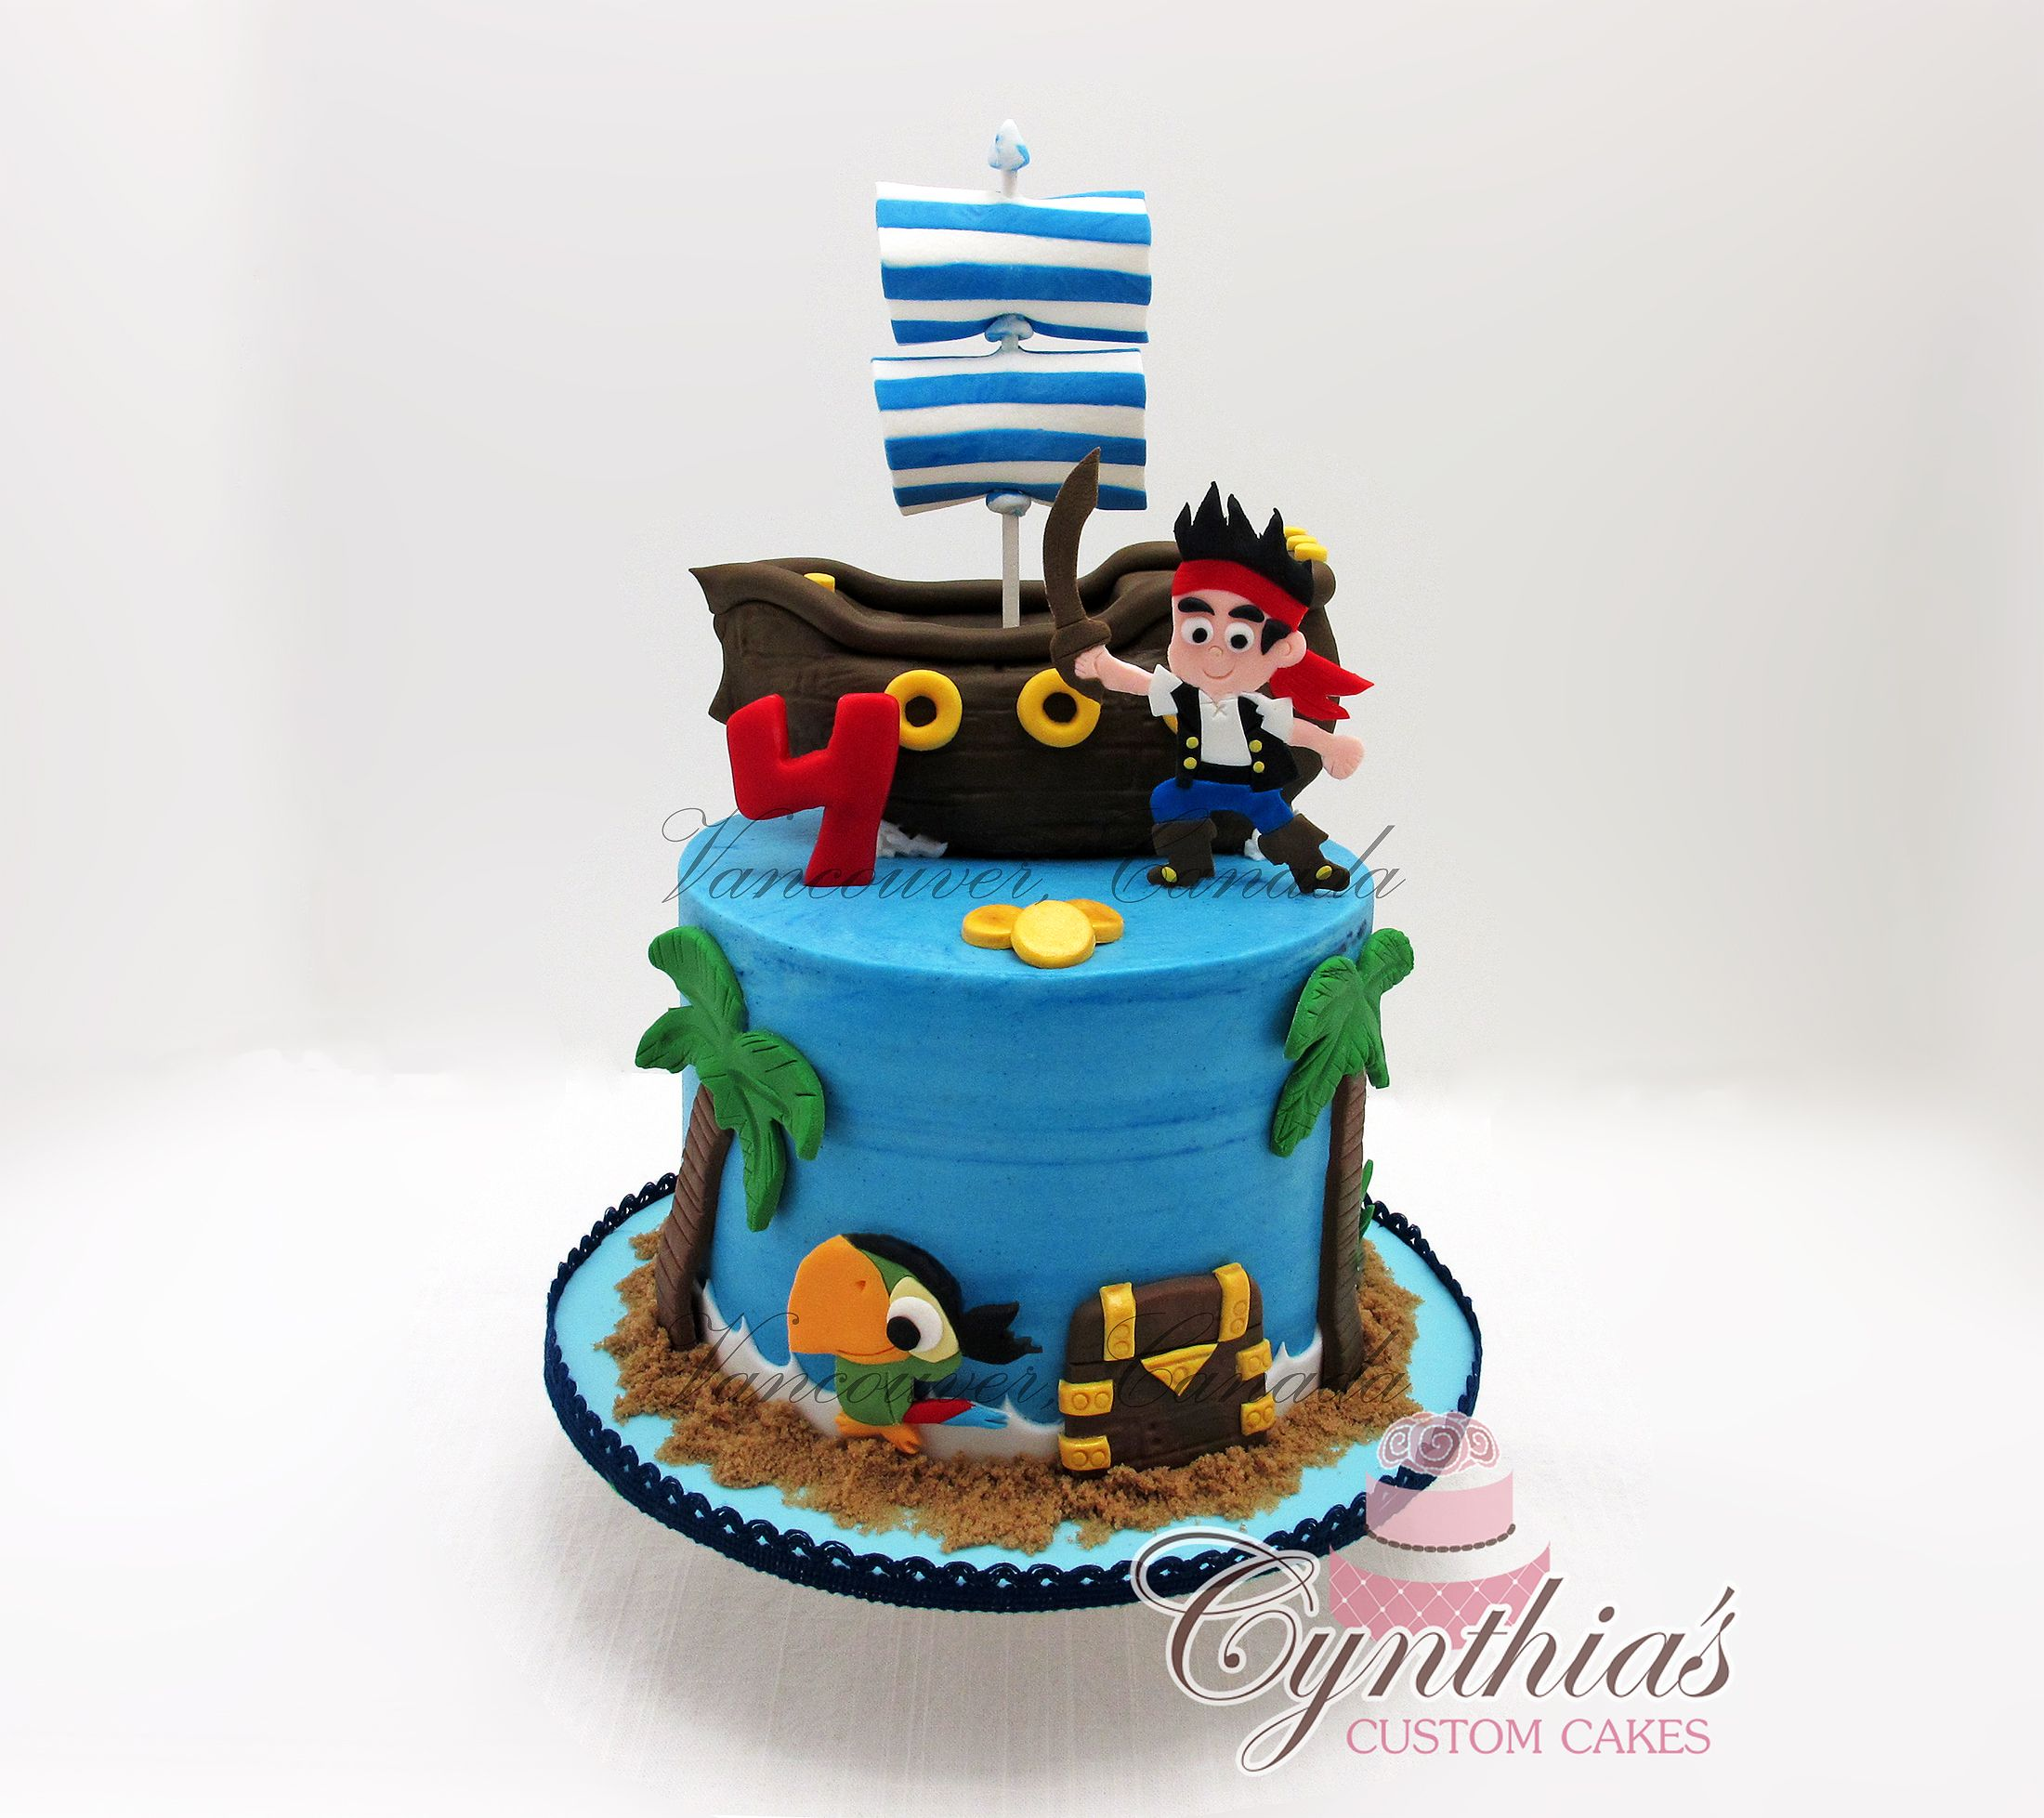 Cake ideas on pinterest pirate cakes marshmallow fondant and - Jake And The Neverland Pirates Cake Buttercream With Fondant Details And Fondant Custom Made 2d